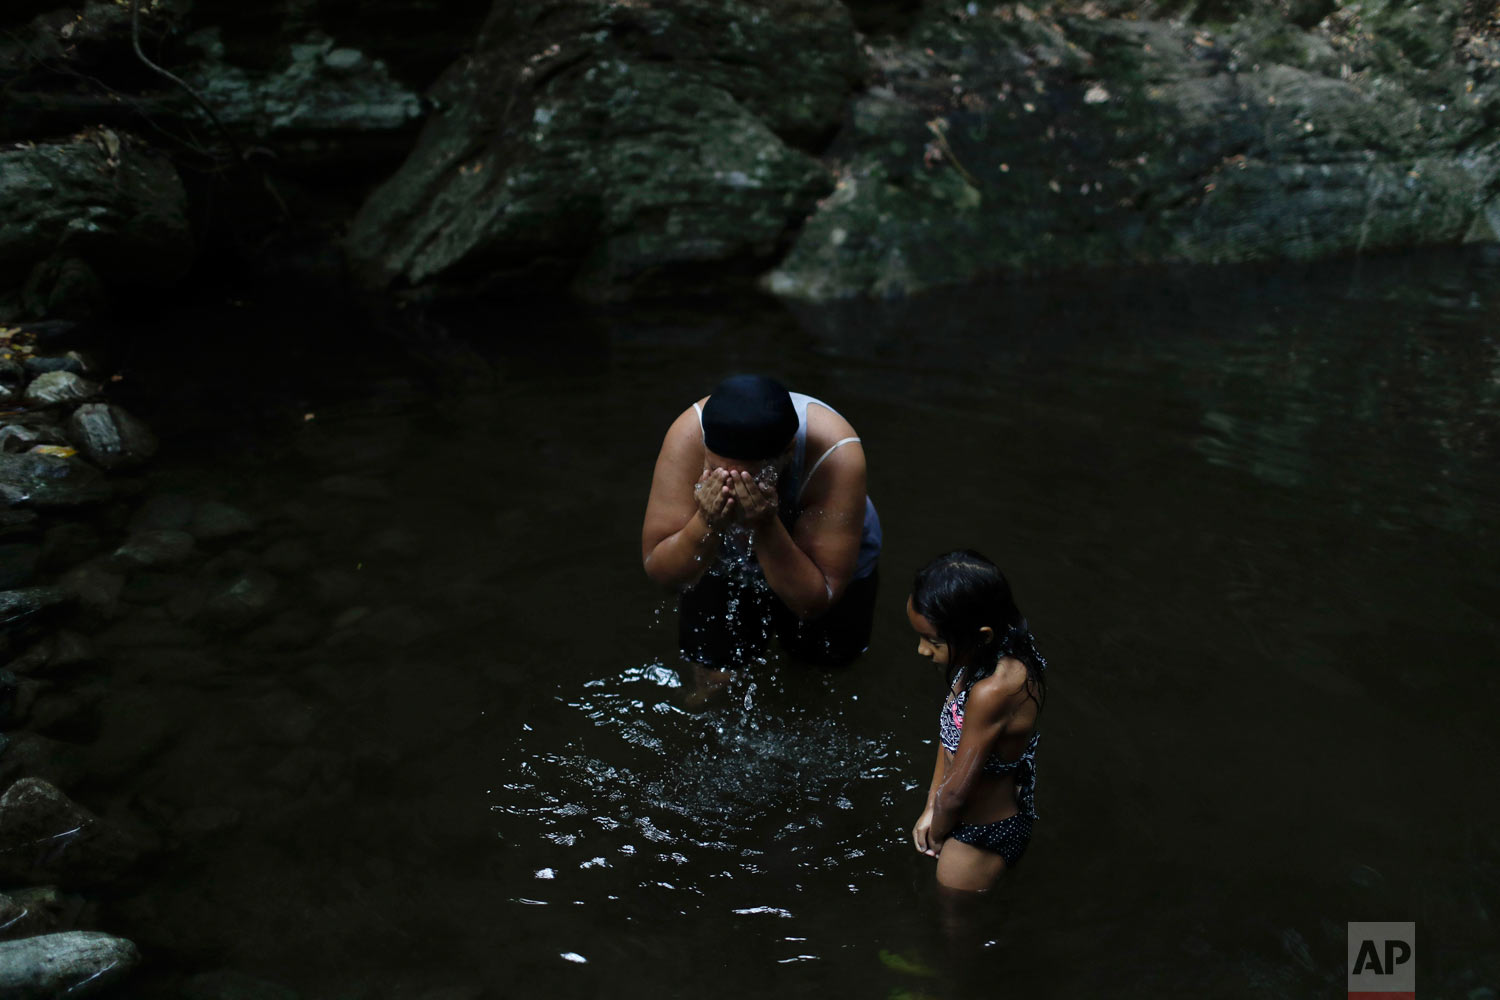 Liz Vargas and her niece Camila Vargas bathe in Avila National Park in Caracas, April 4, 2019. Vargas said she hasn't had running water at home for the previous 15 days, and this was the first time she'd come to bathe where she used to swim for fun. (AP Photo/Natacha Pisarenko)